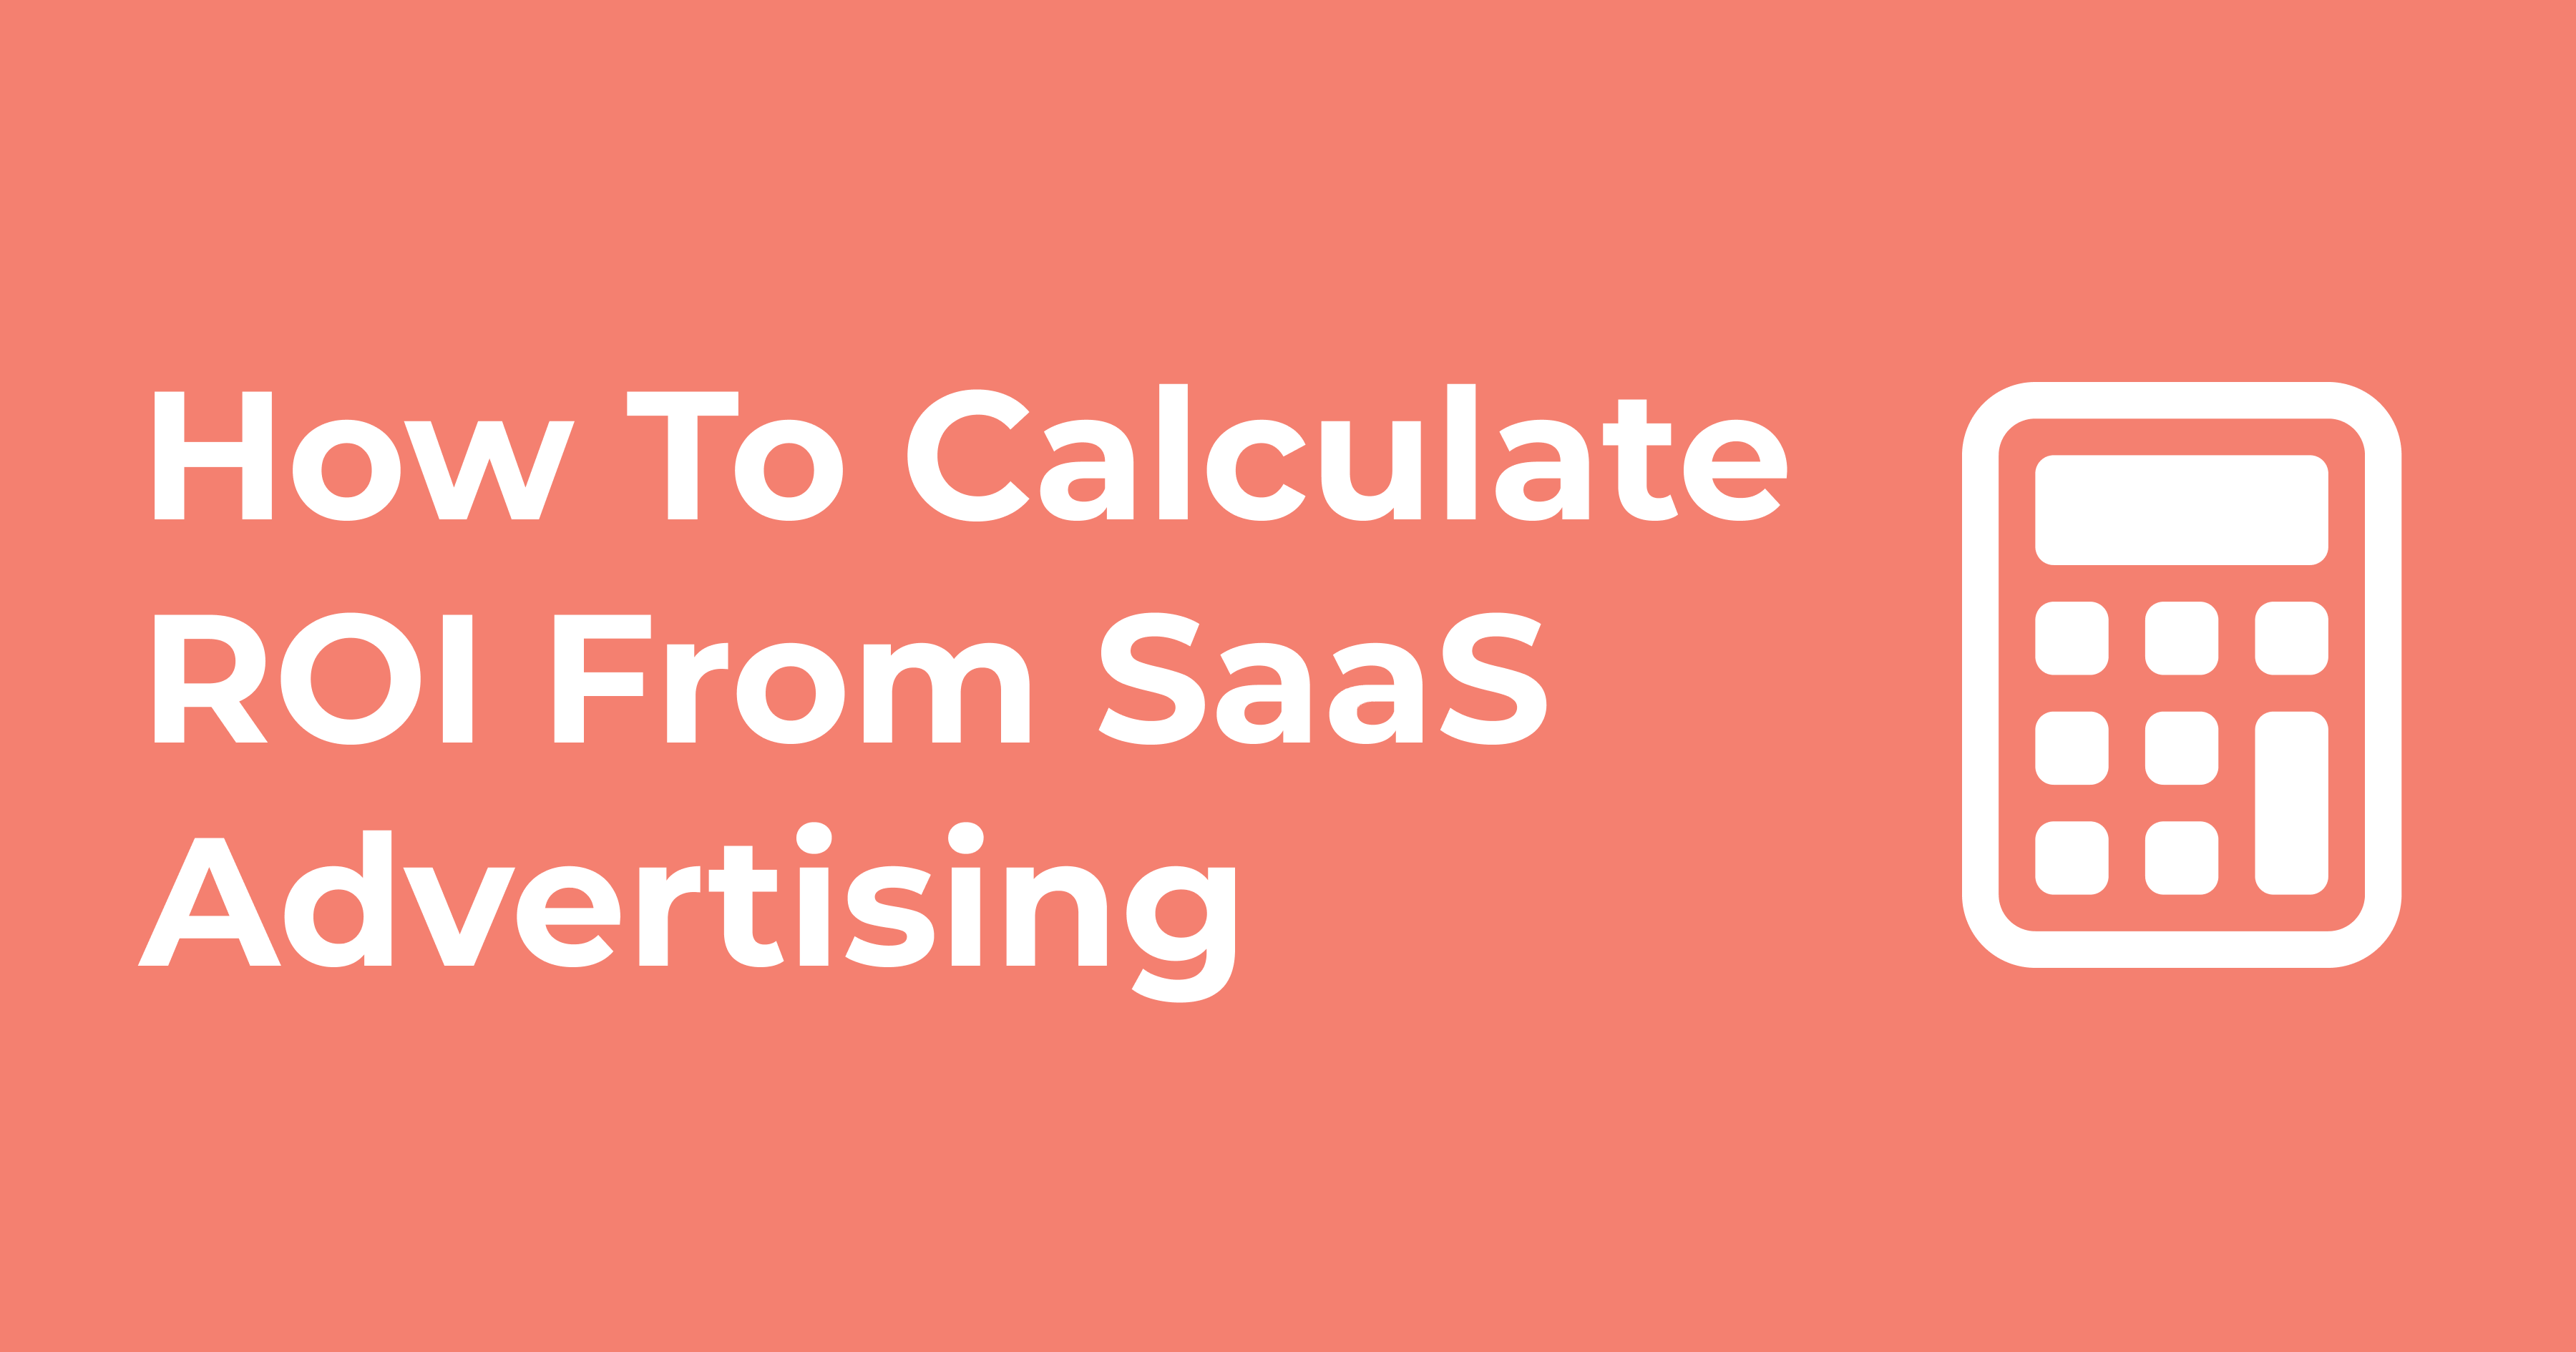 How To Calculate ROI From SaaS Advertising